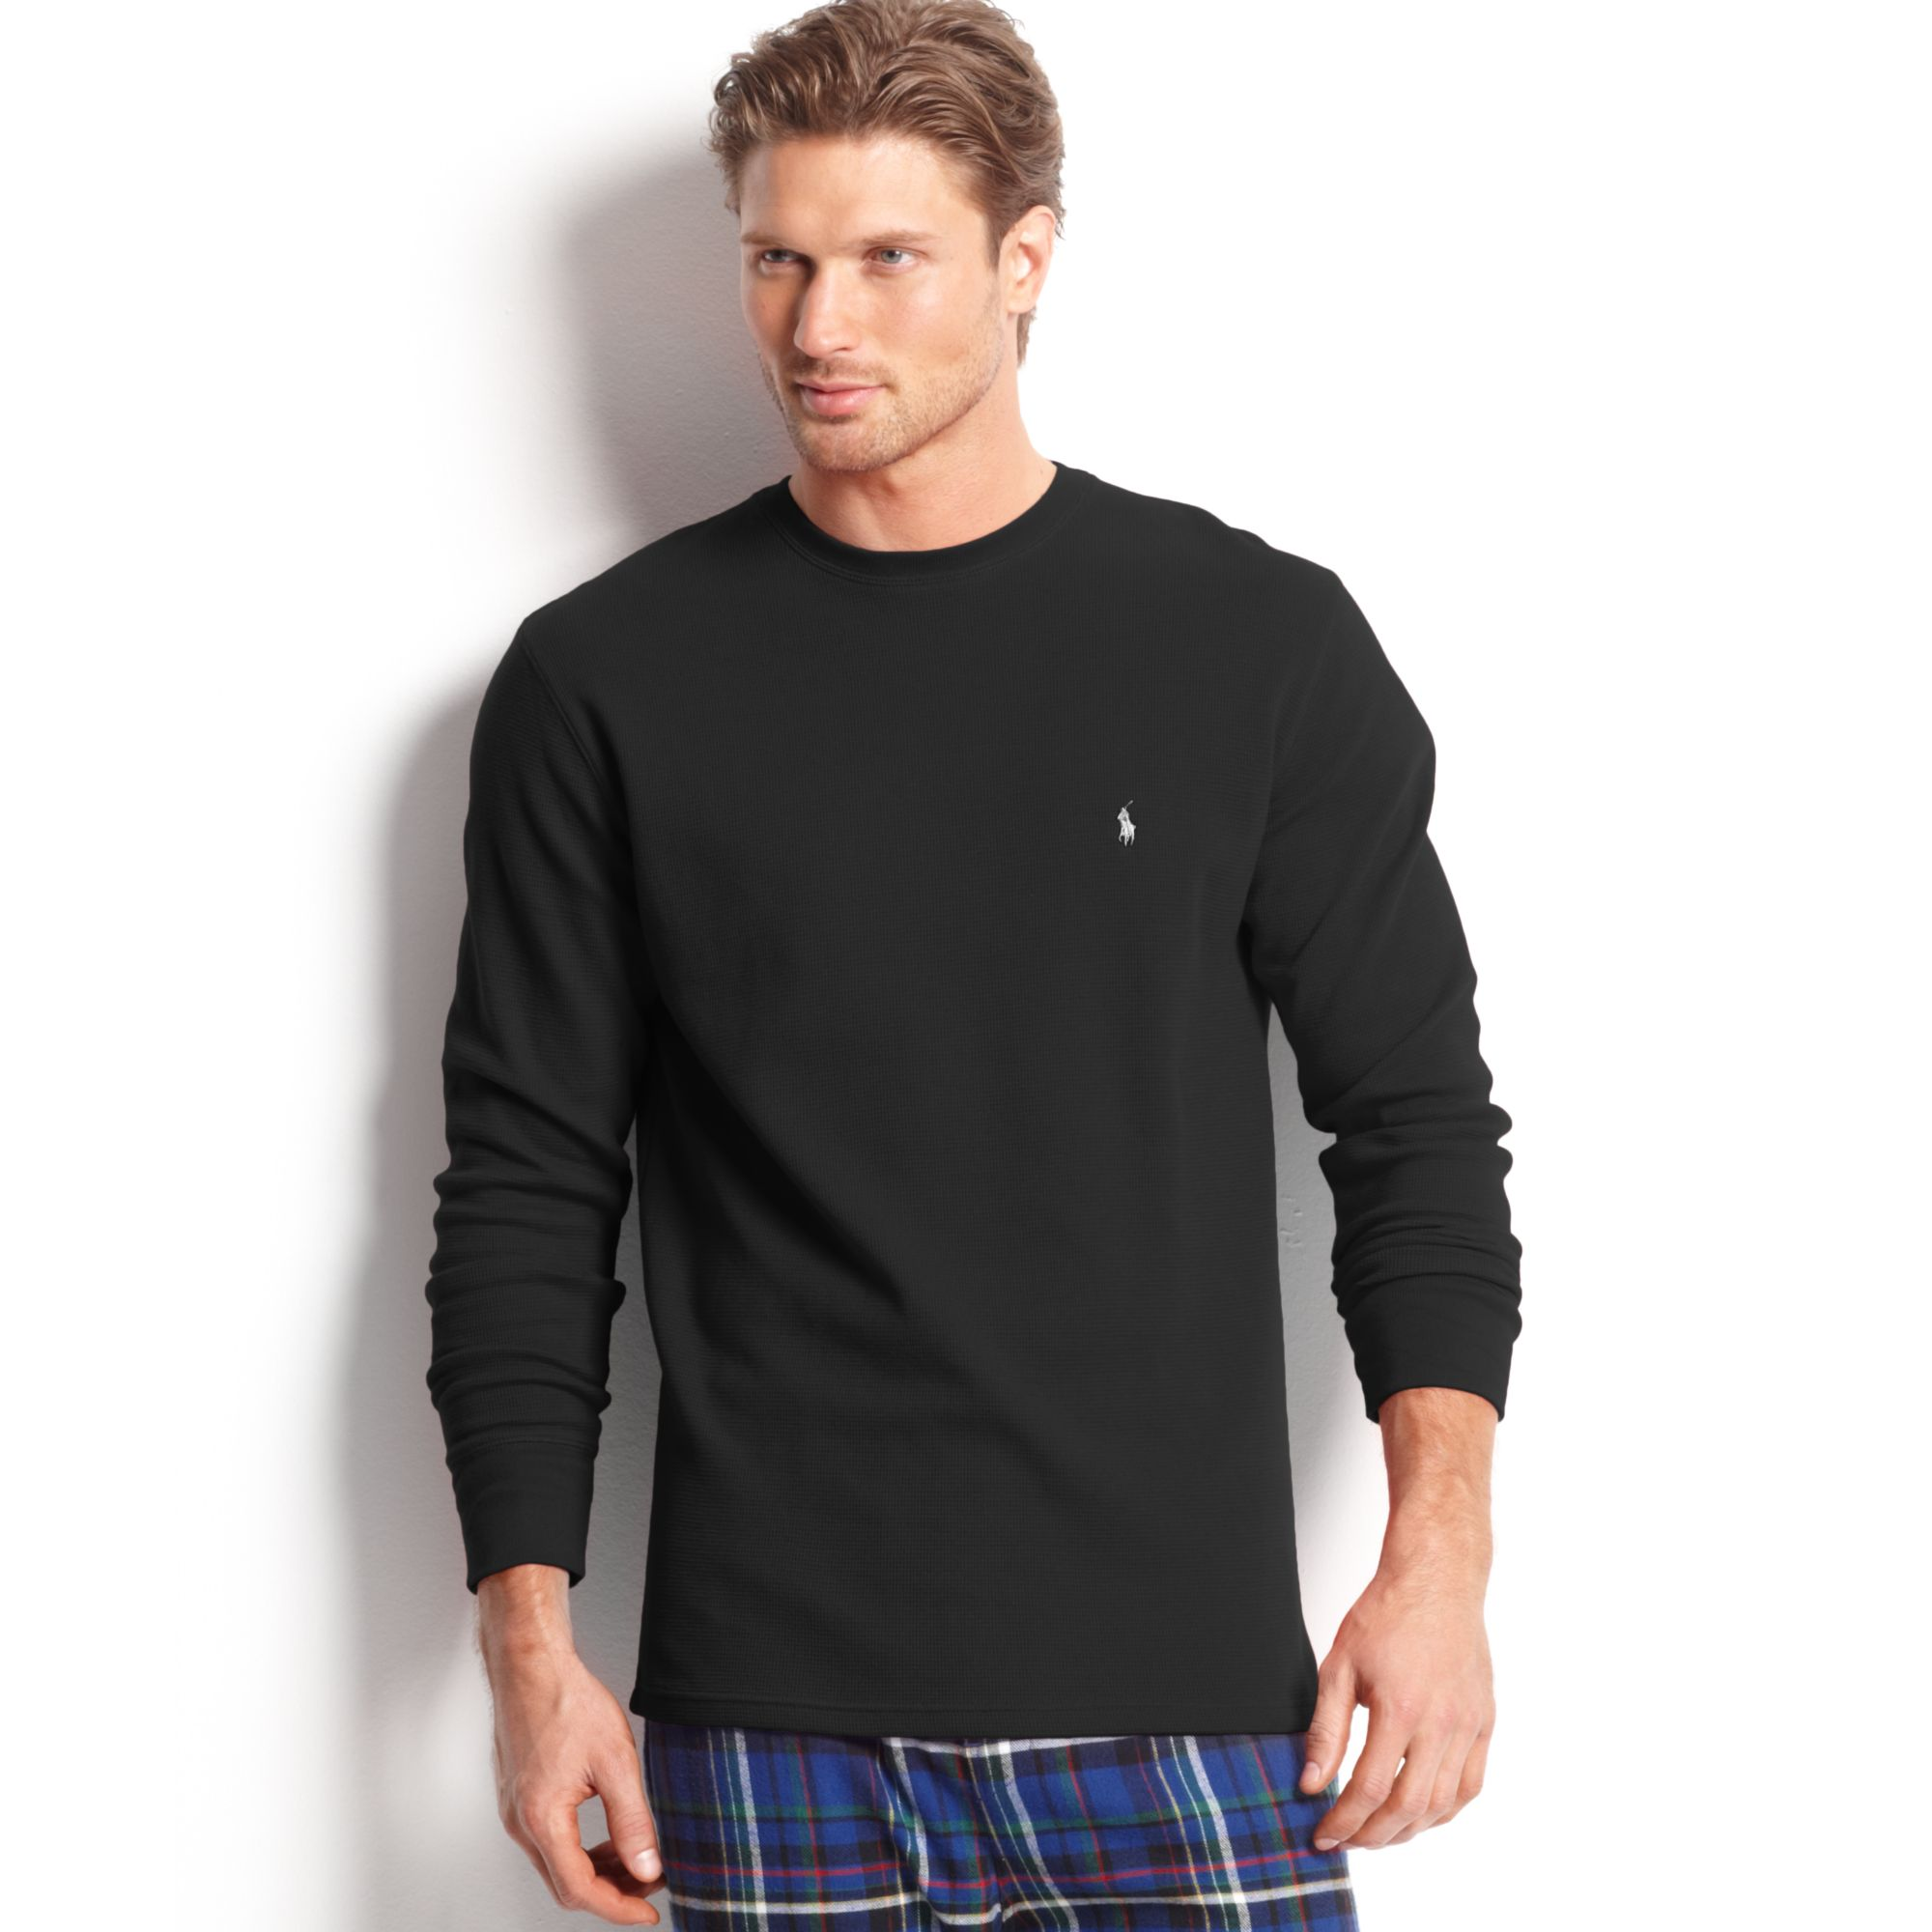 Ralph lauren long sleeve crew neck waffleknit thermal Thermal t shirt long sleeve